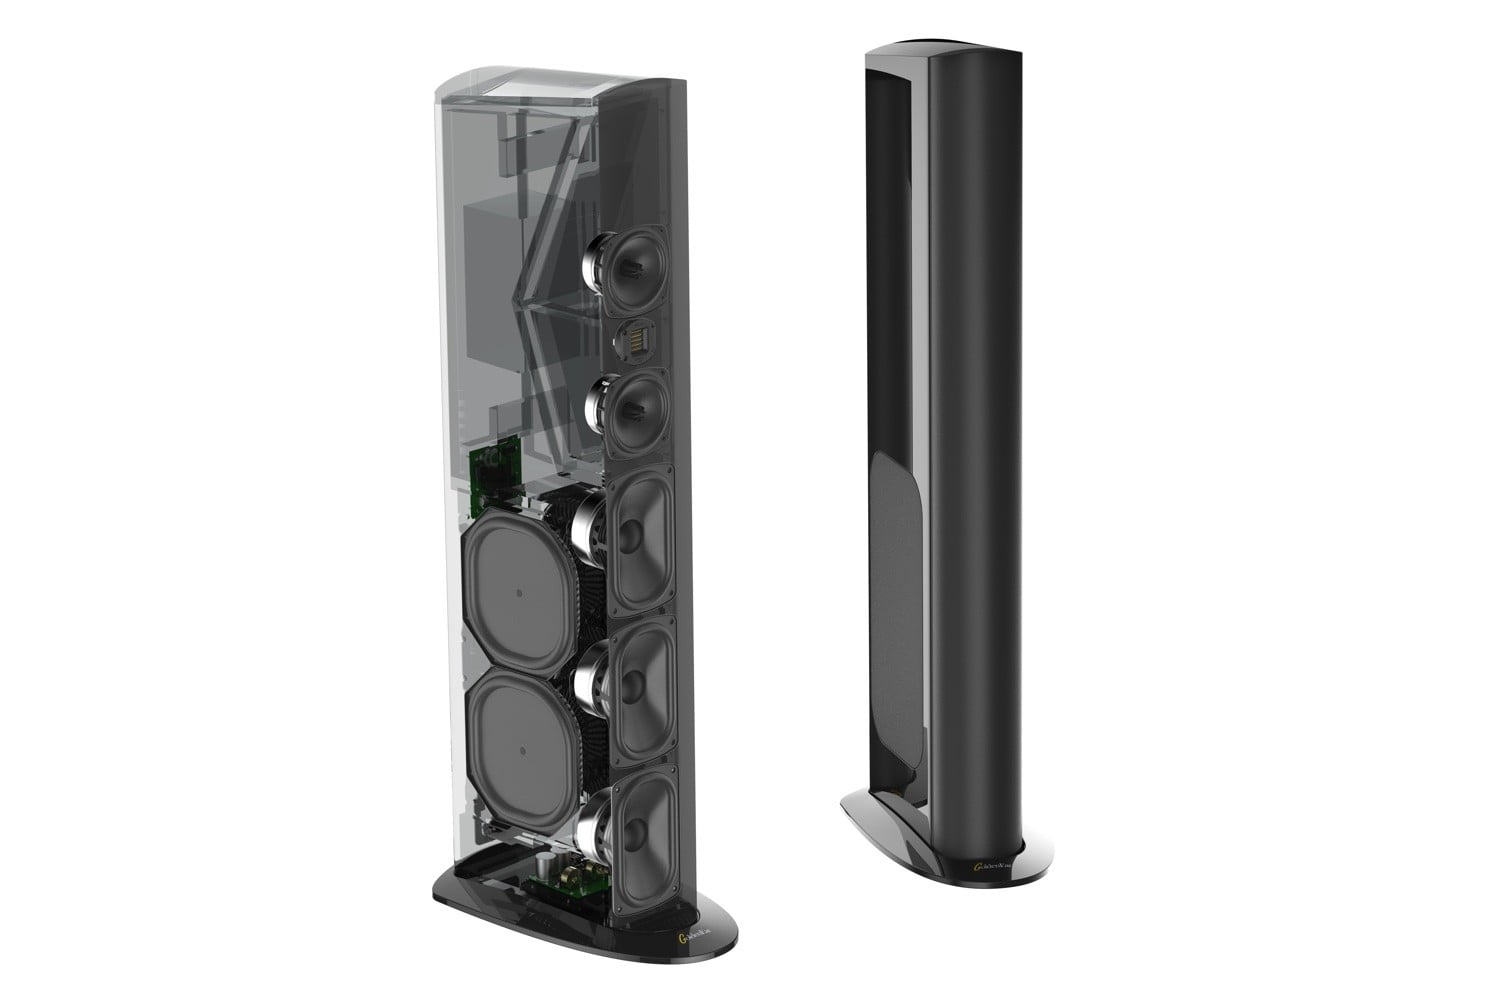 goldenear debuts triton reference loudspeaker at ces digital trends on the high end the new reference high velocity folded ribbon hvfr tweeter uses 50 percent more rare earth neodymium magnet material than the company s